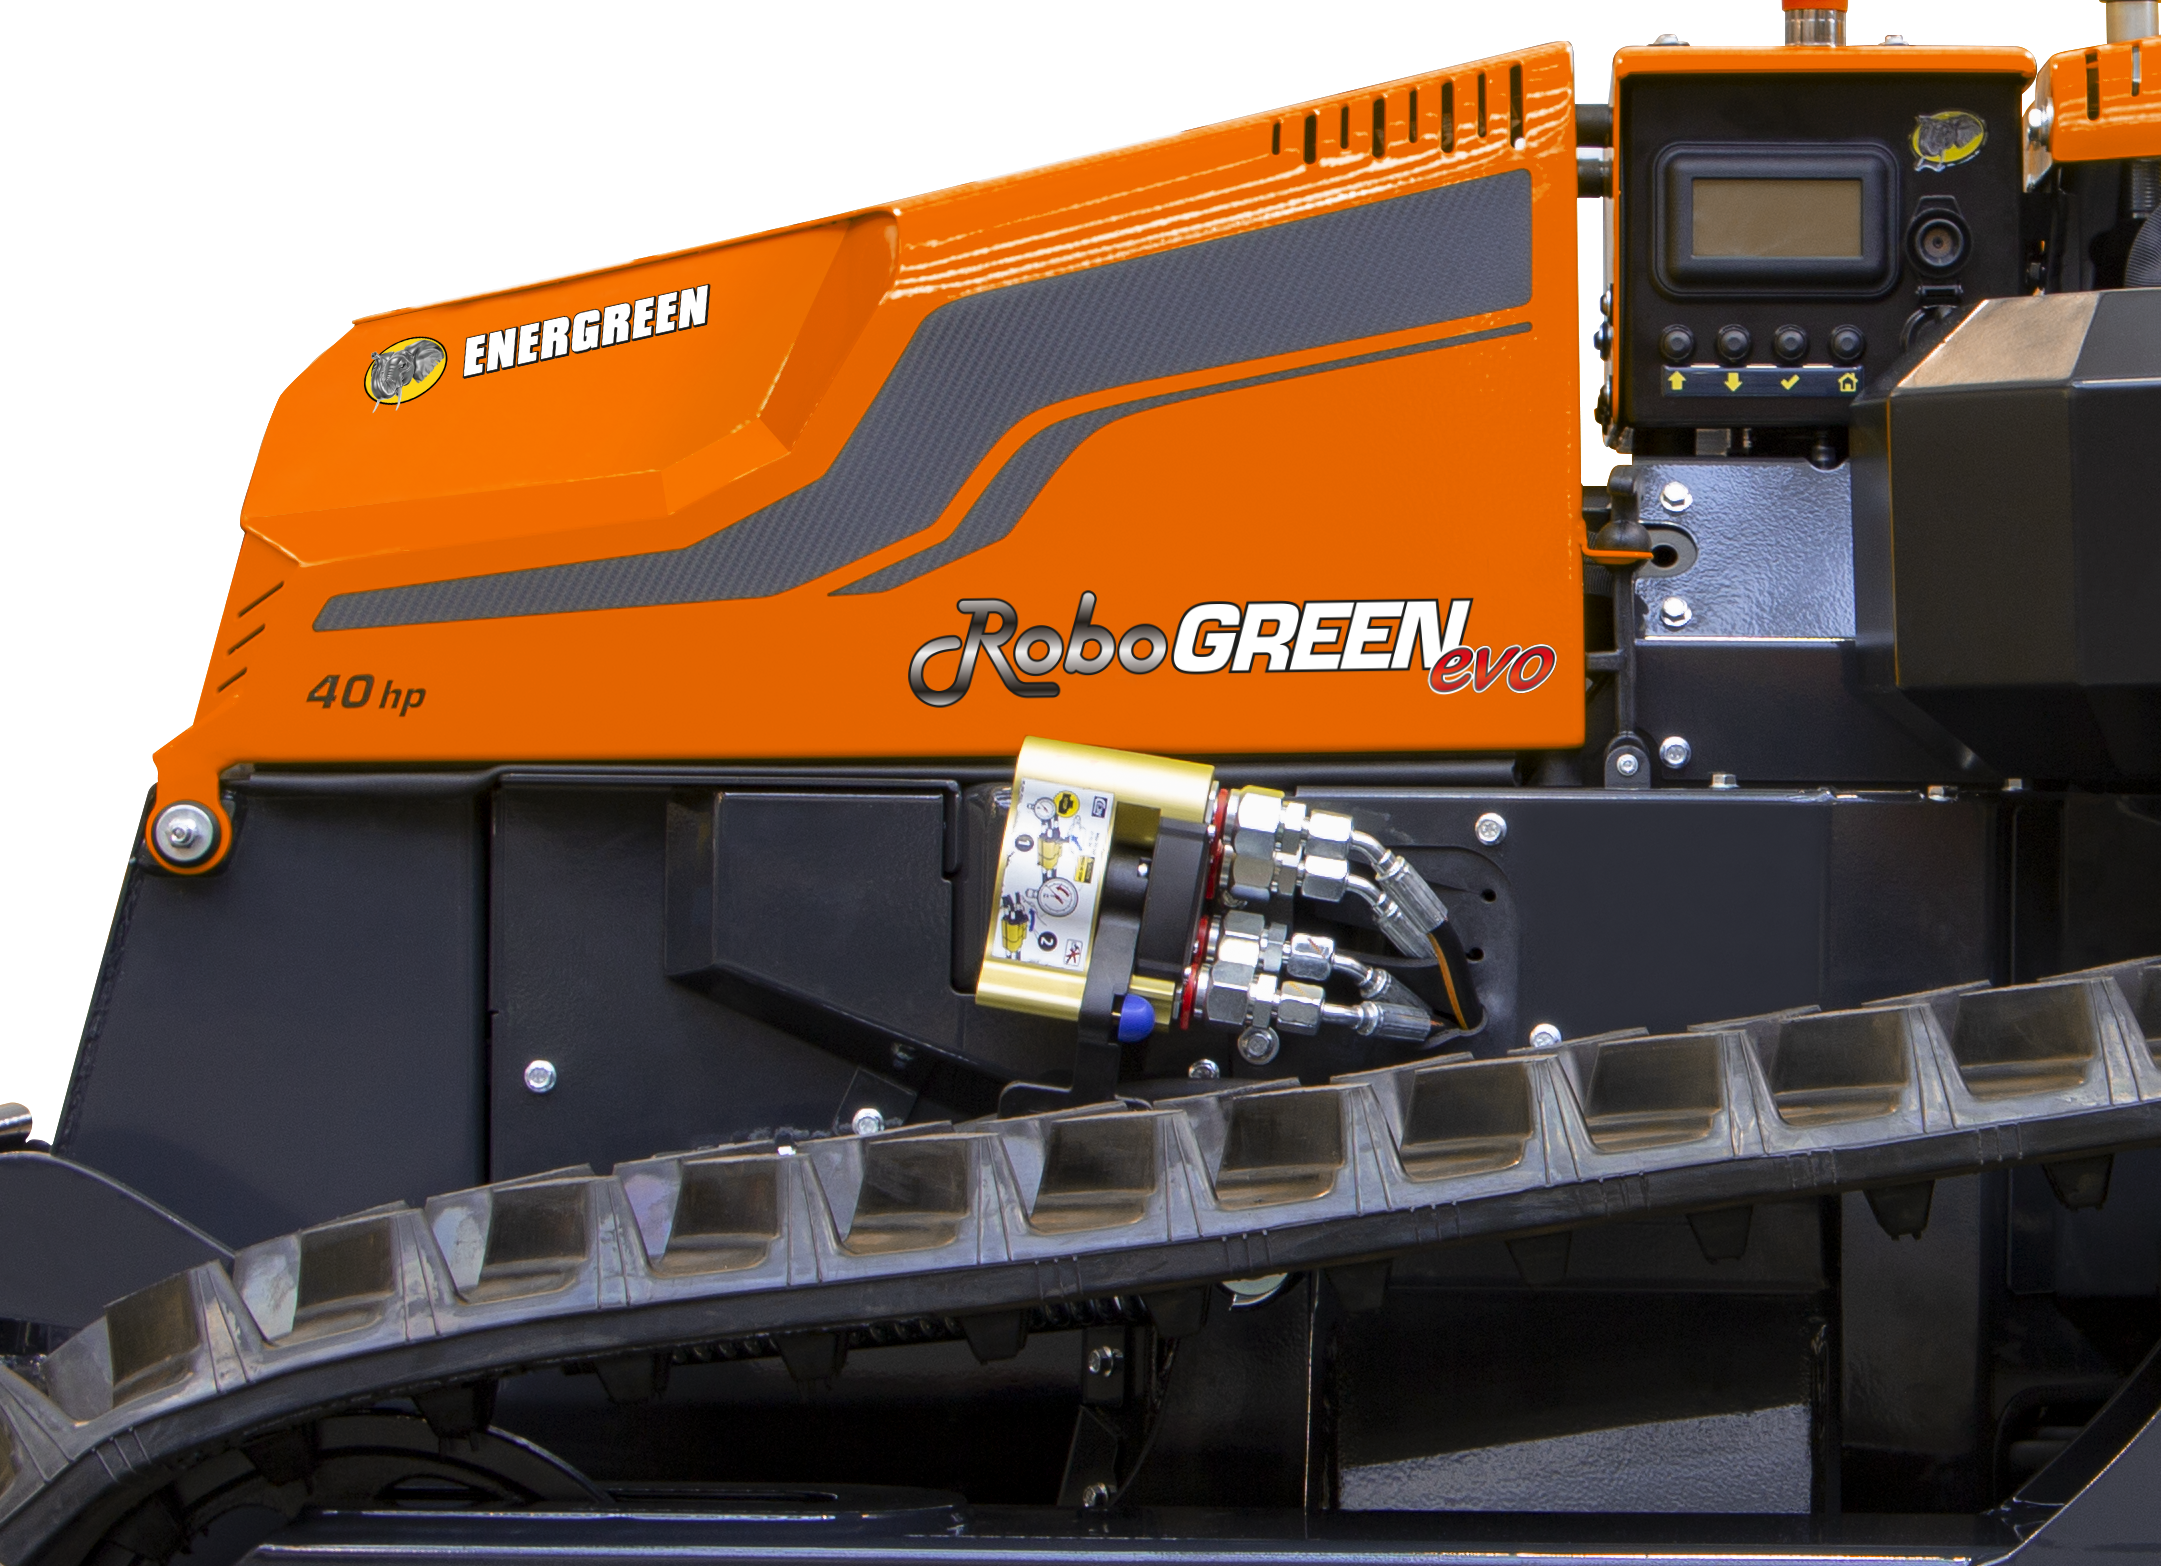 robogreen evo - connection plate - energreen america professional machines